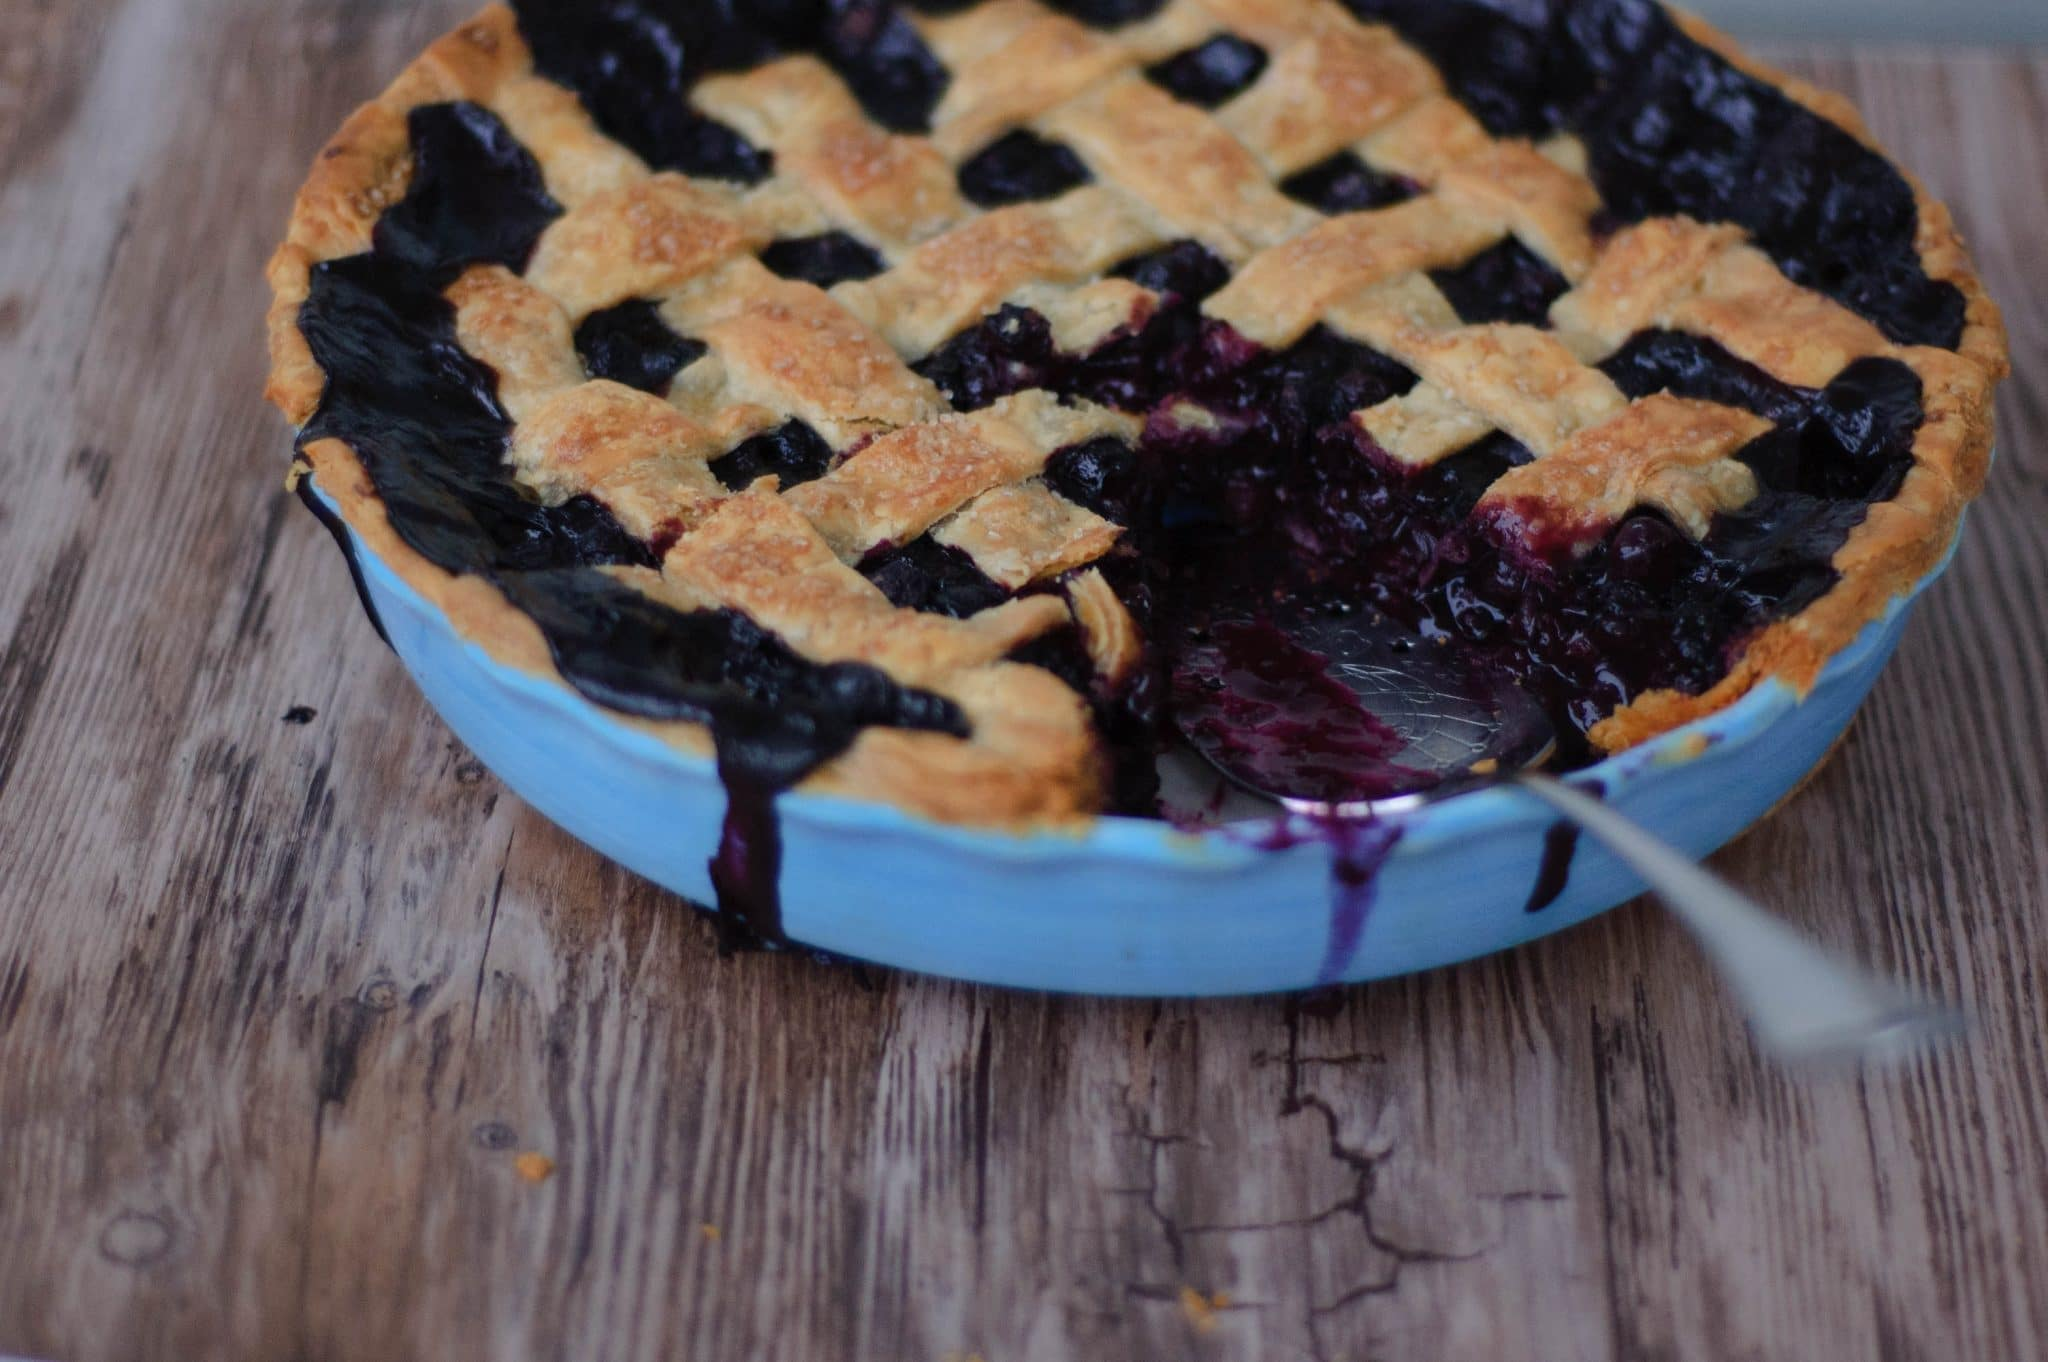 Spiced Blueberry Pie with a Cardamom Crust